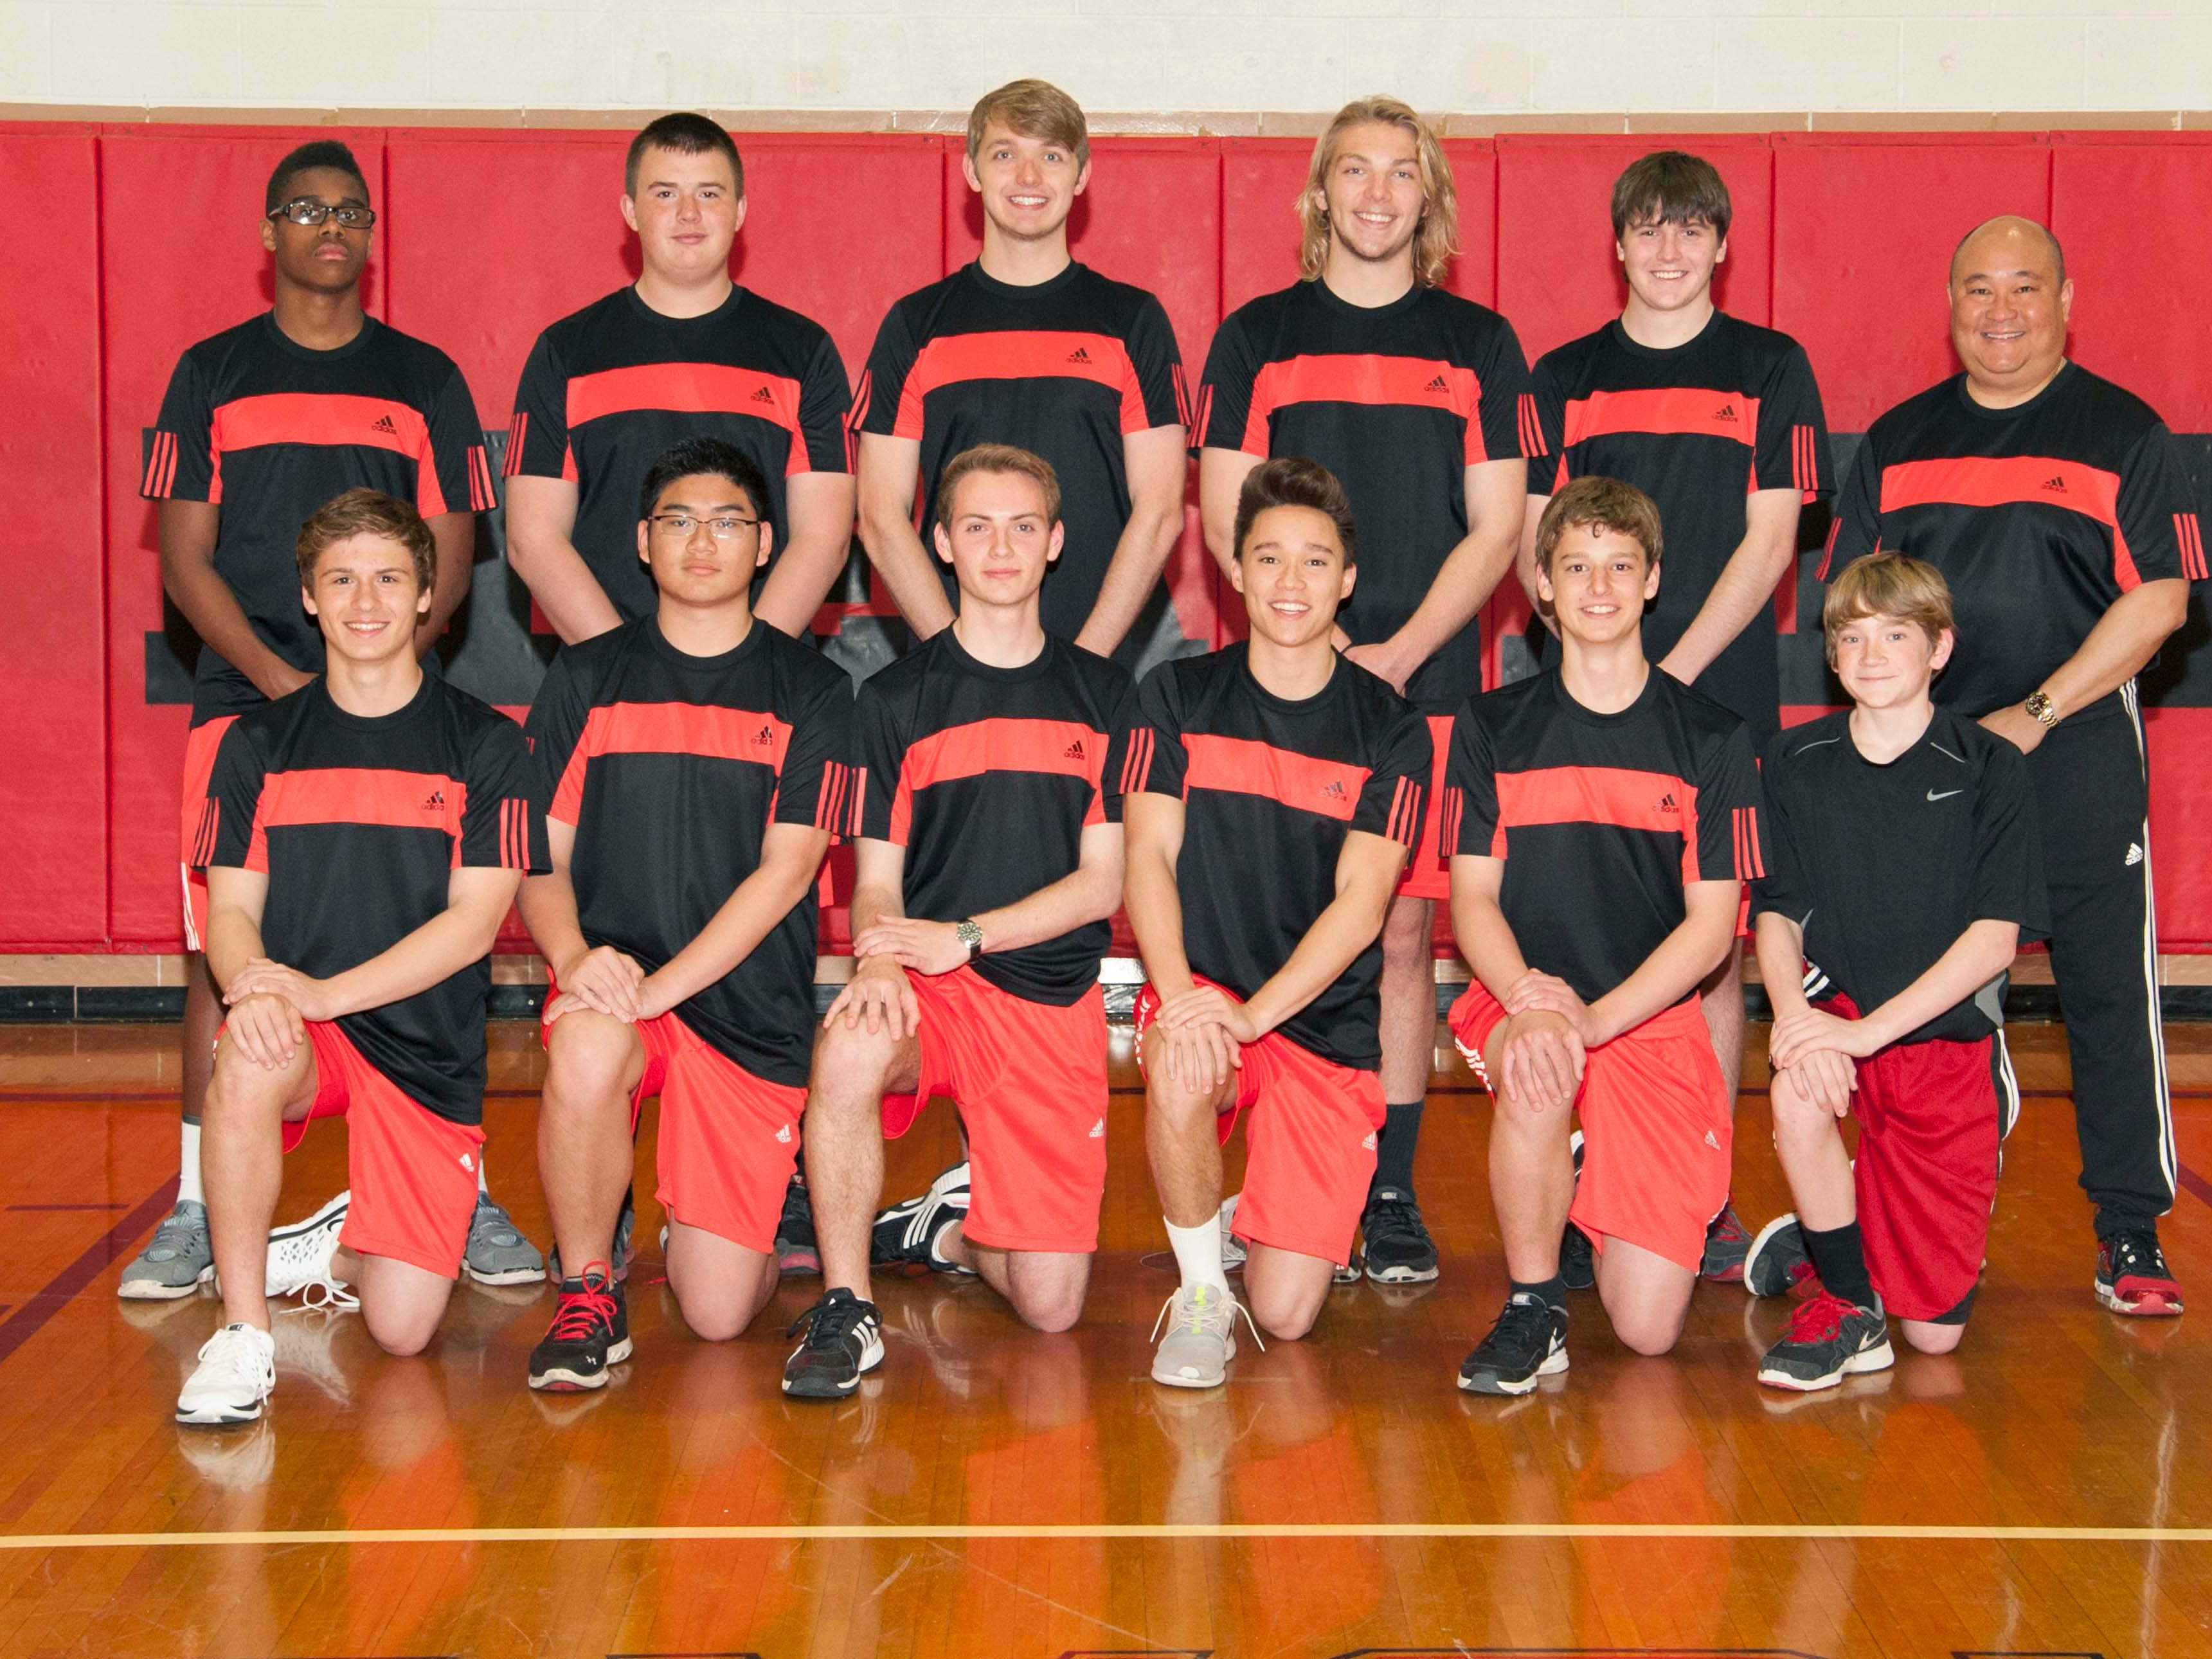 The Pleasant 2015 varsity boys tennis team is, front row from left, Drayson Campbell, Allen Zhang, Robert Wiley, Christian Vaflor and Issac Zachmann. Back row is Kaleb Taylor, Adam Meyer, Zac Howerfield, Grant Wilson, Garrett Coppler and coach Ed Vaflor.